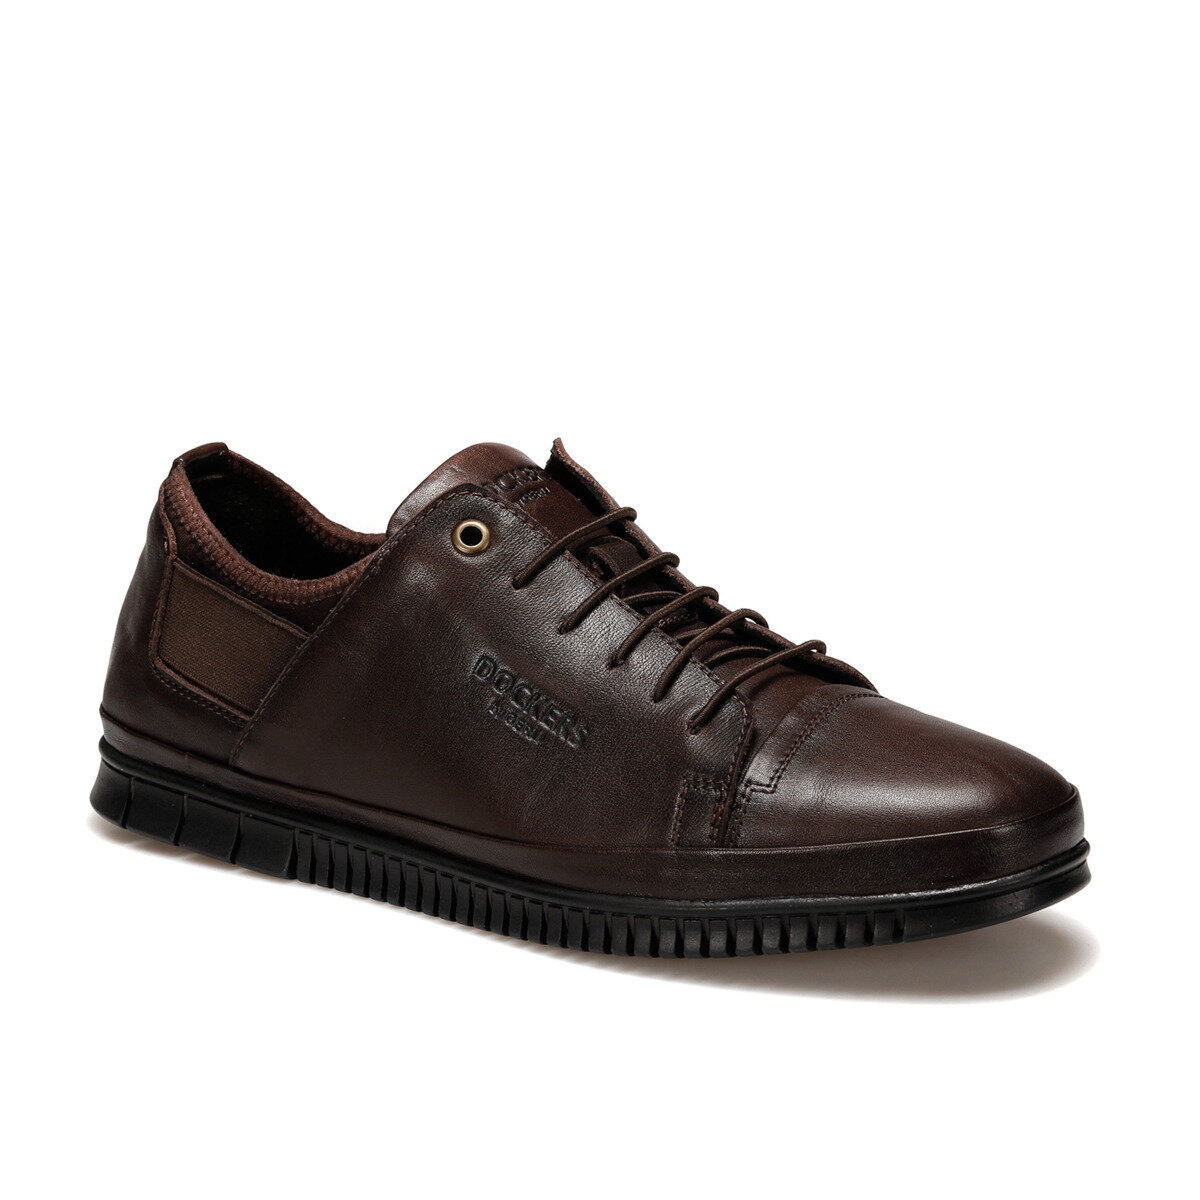 FLO 228600 Brown Men 'S Casual Shoes By Dockers The Gerle